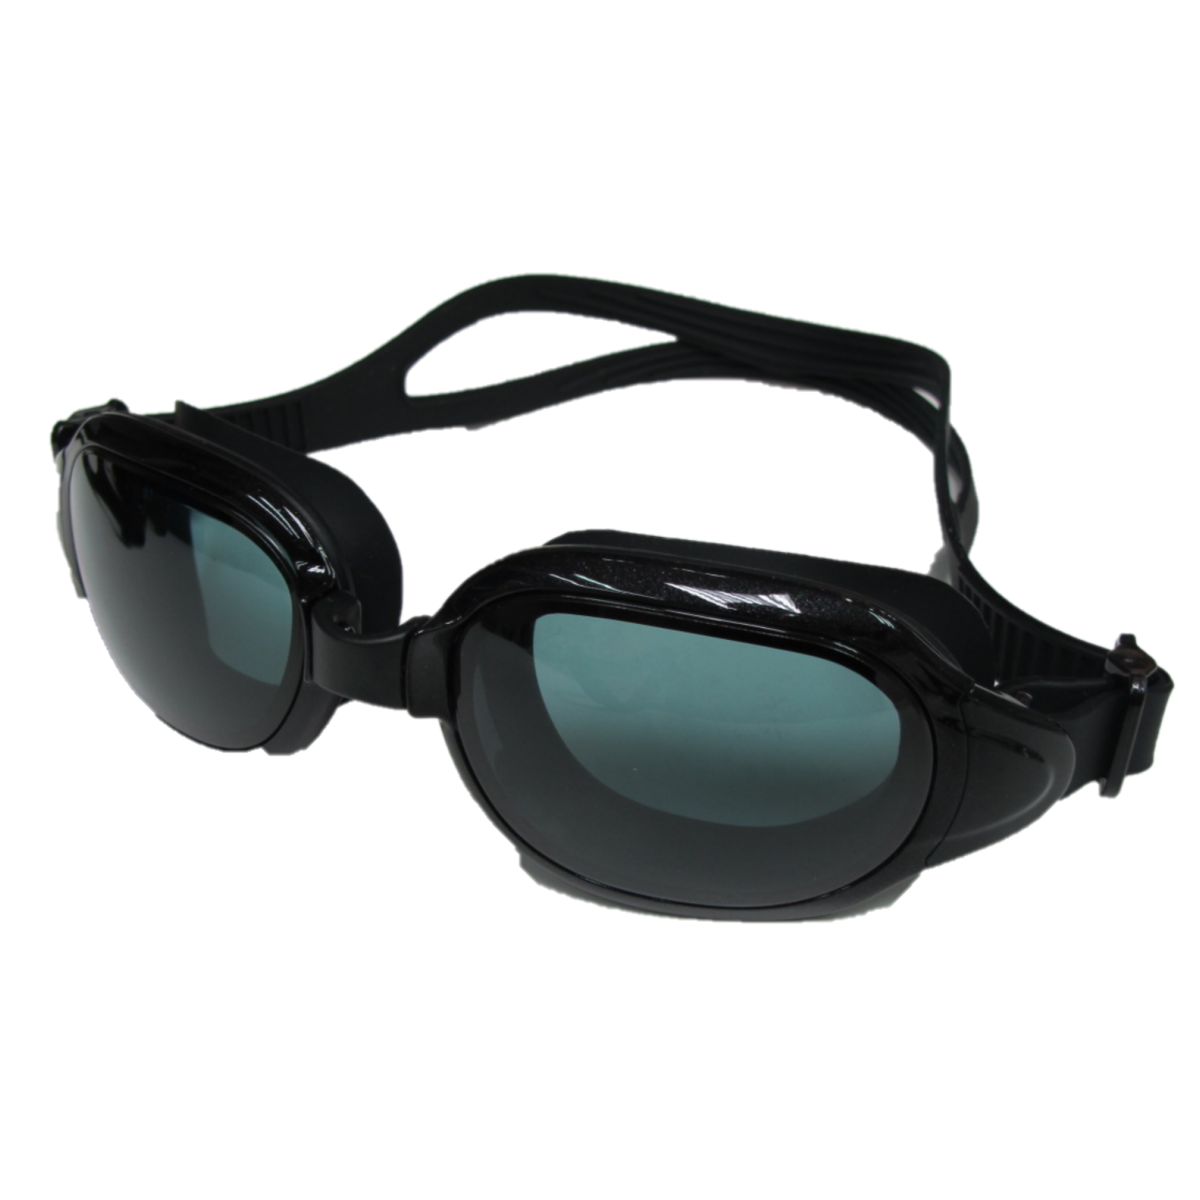 [MS-8700] High Quality Silicone UV Protection Anti-Fog Black Swimming Goggles